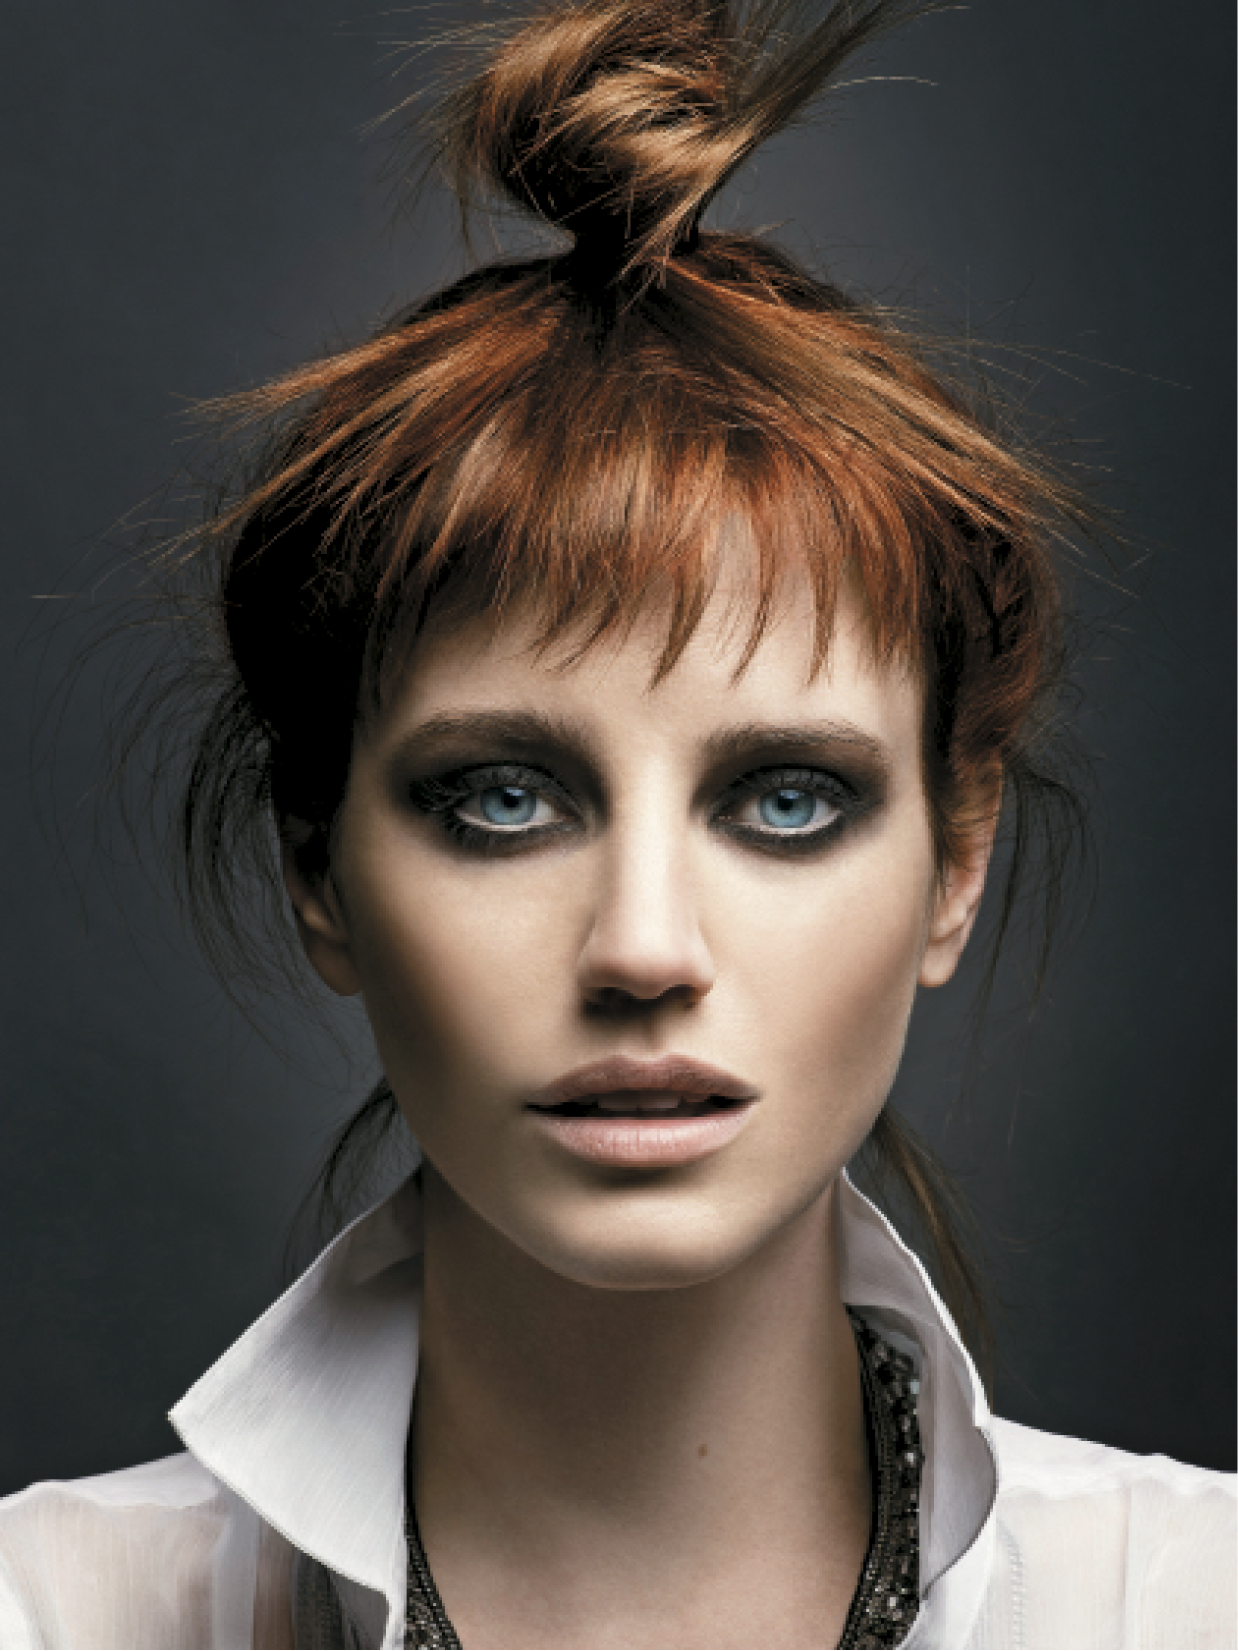 When creating this look, Baxter added vibrant copper hues to a natural copper base, which he says gives the color a surprise element. The hair was then styled in a top knot to show off the color and create a casual feel.